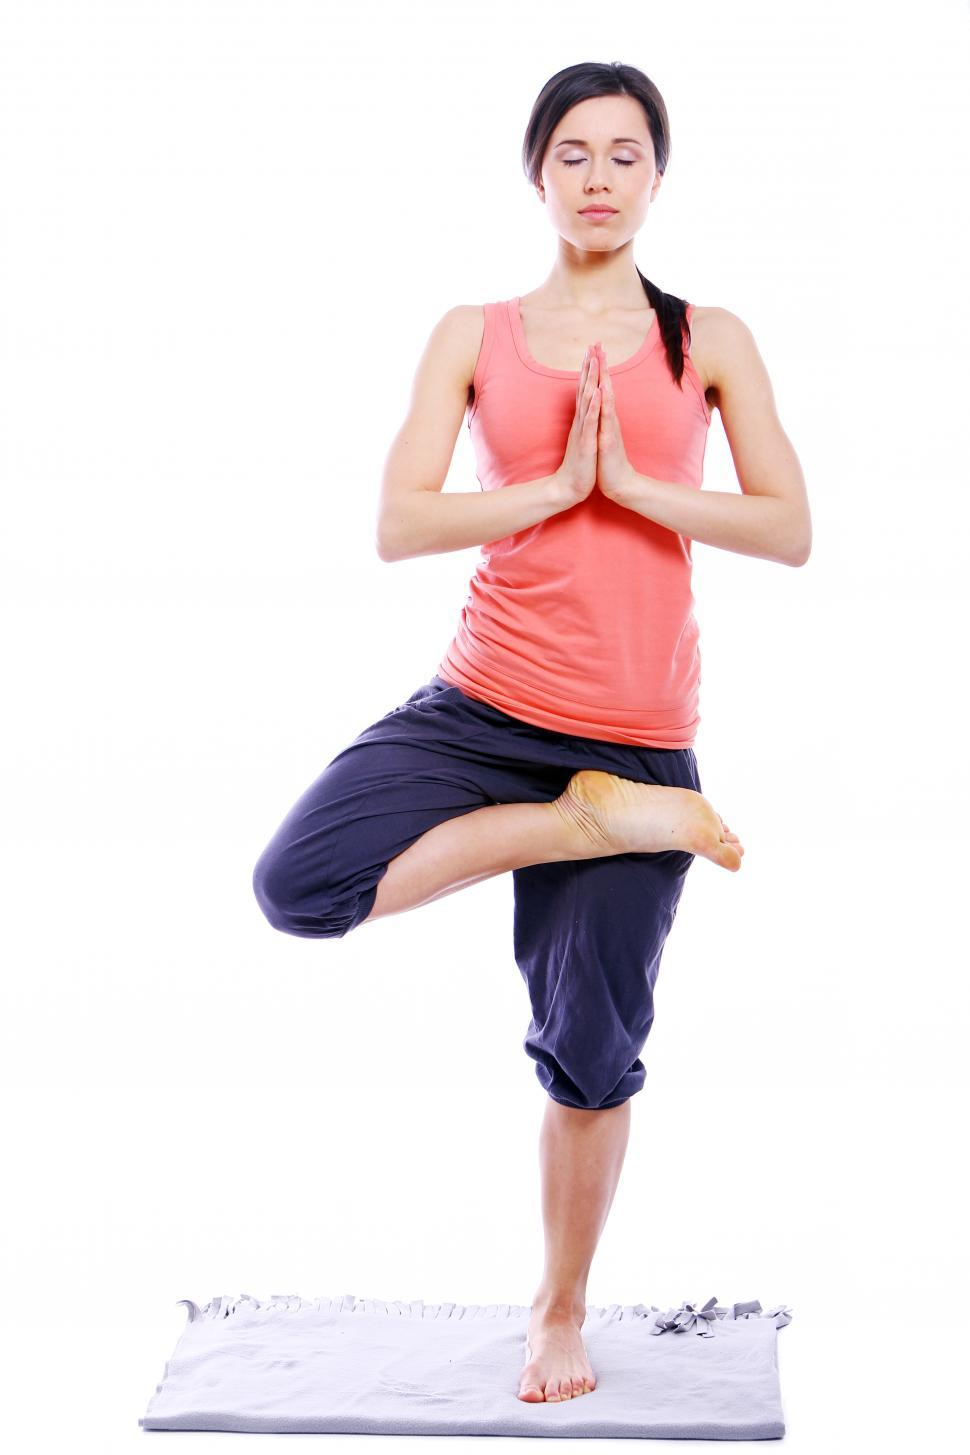 Download Free Stock HD Photo of Woman doing yoga - Tree Pose Hands in Prayer Position Online